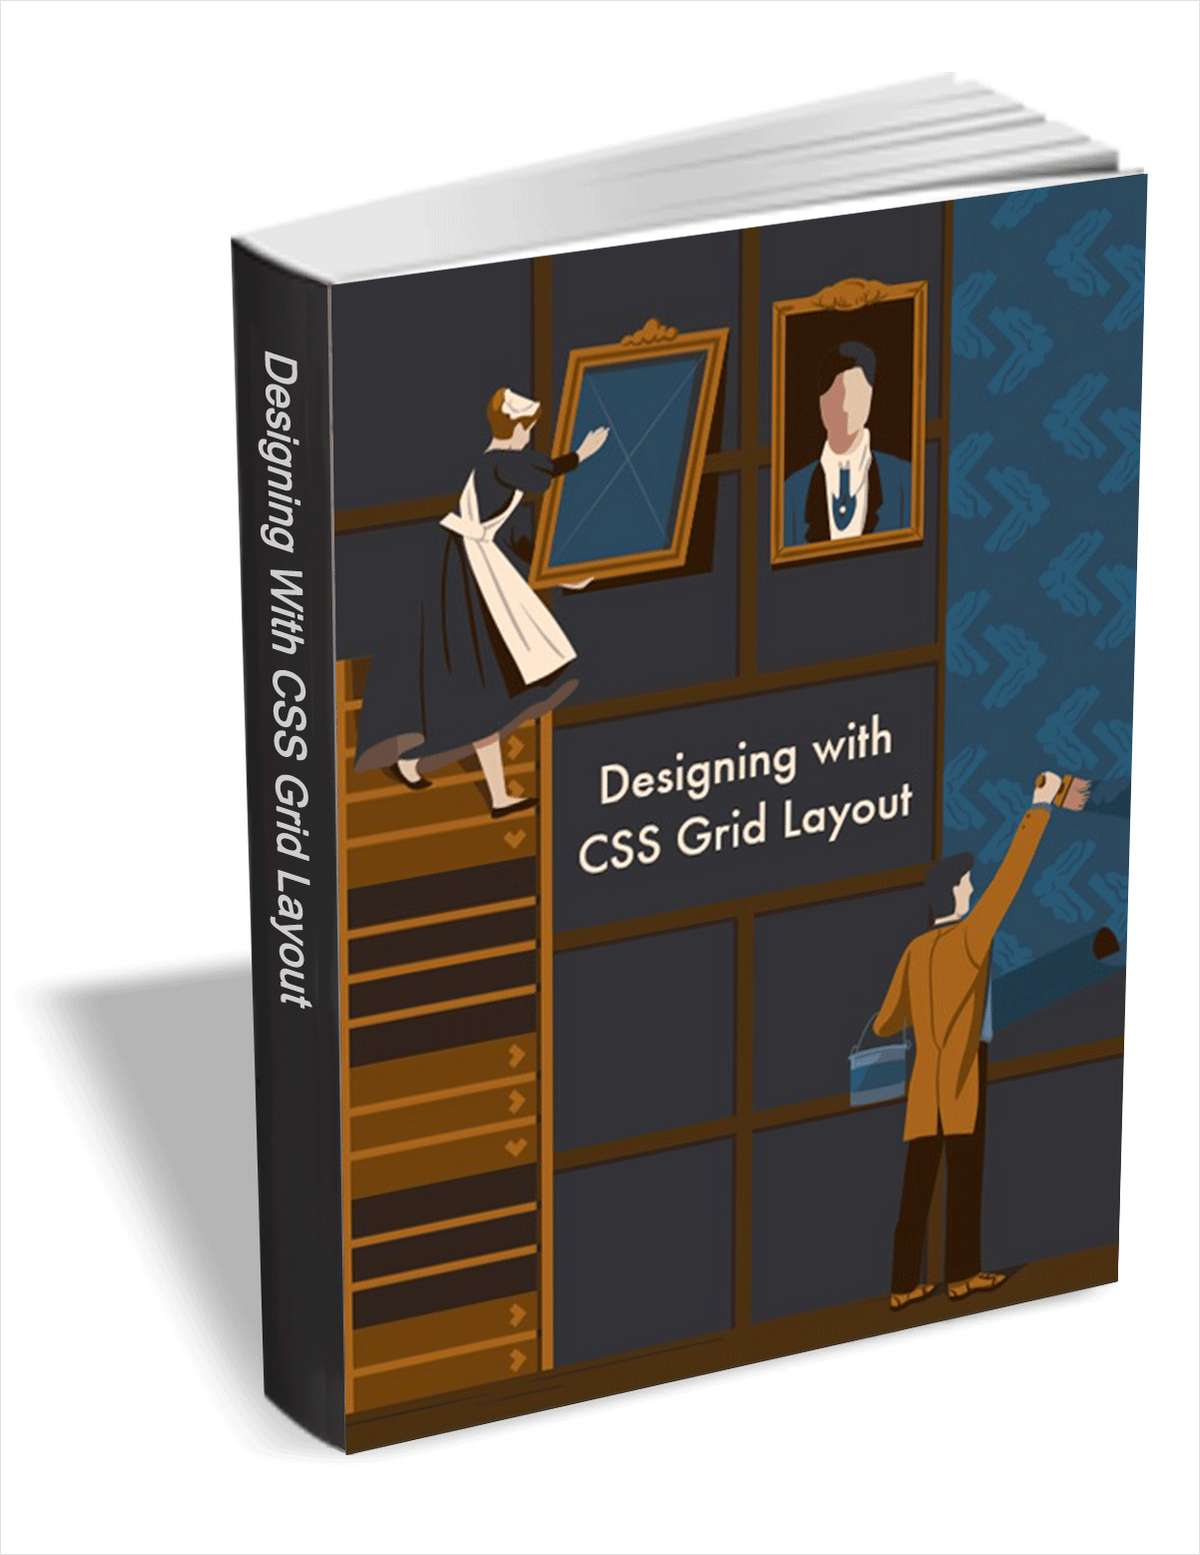 Designing with CSS Grid Layout ($4.99 Value FREE For a Limited Time)